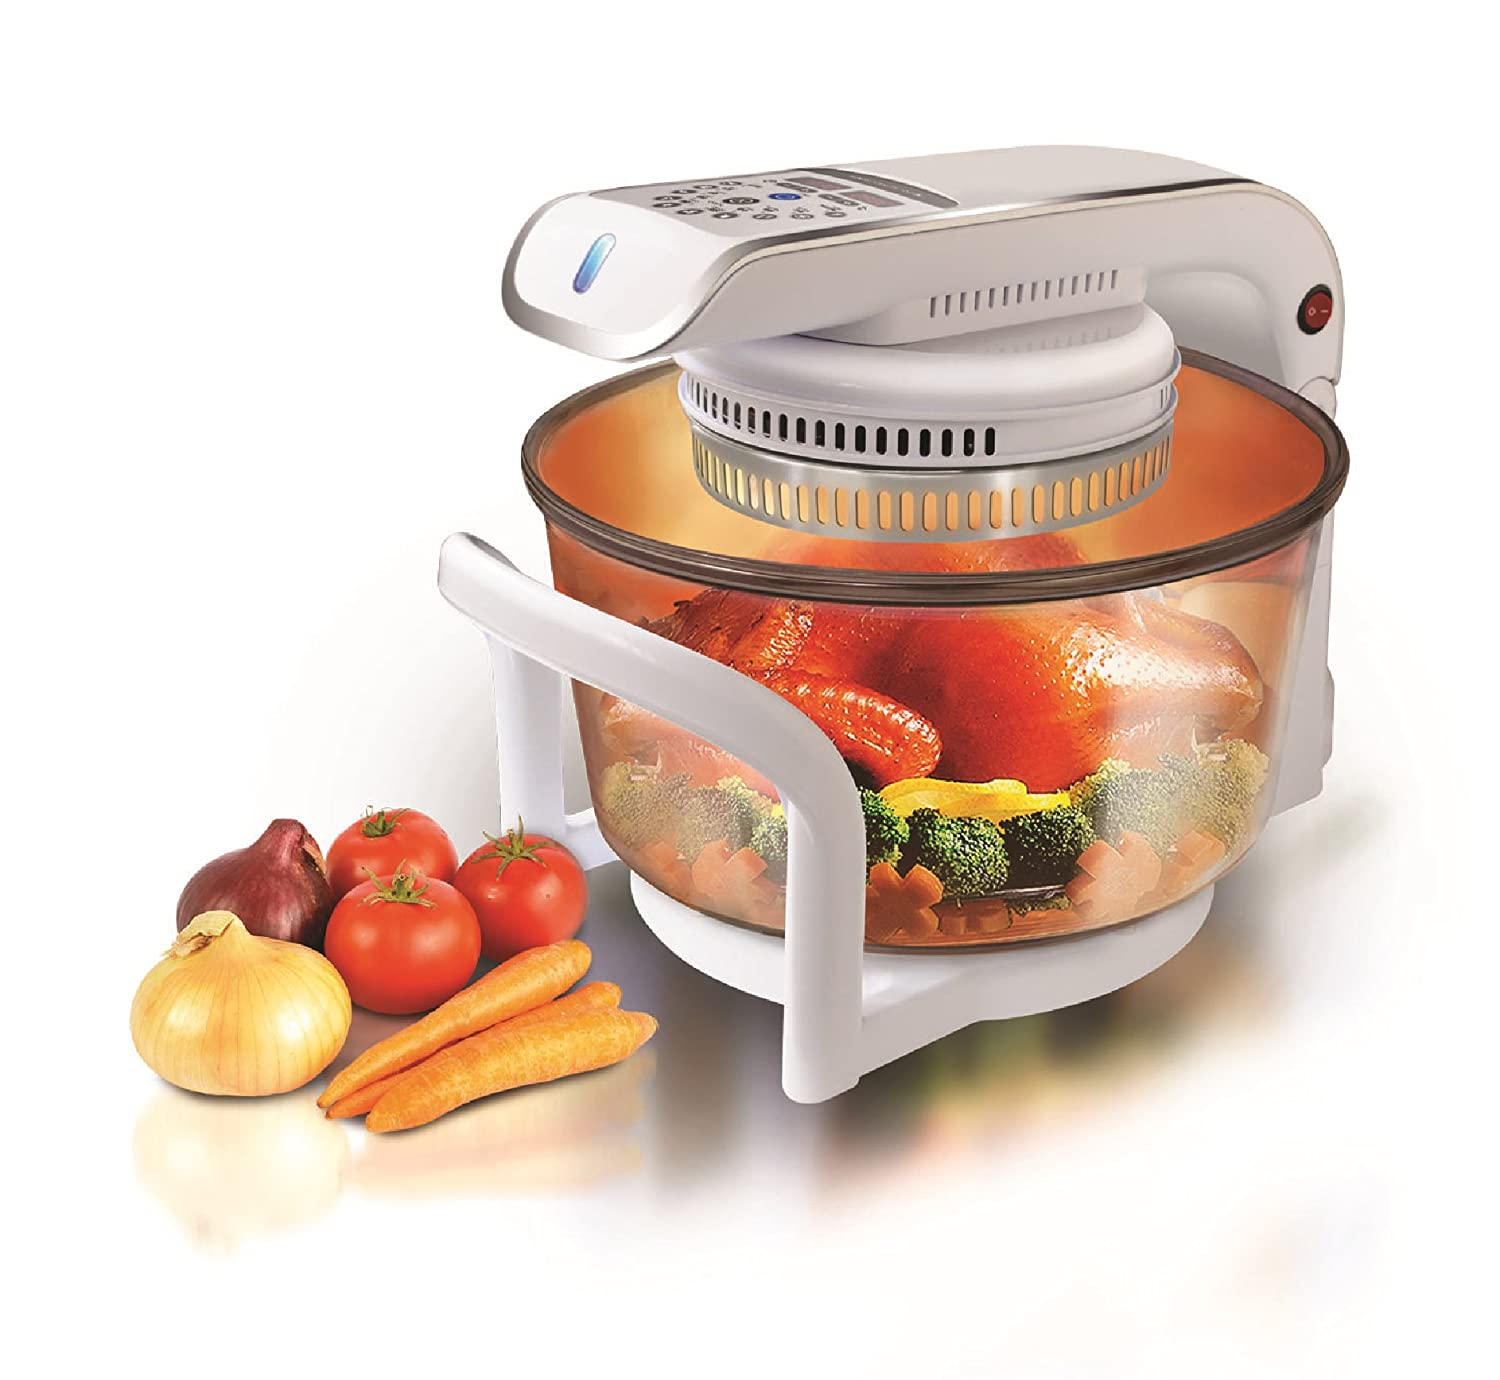 Infinity ICO788DH Digital + Halogen Turbo Convection Oven InfinityProducts.ca